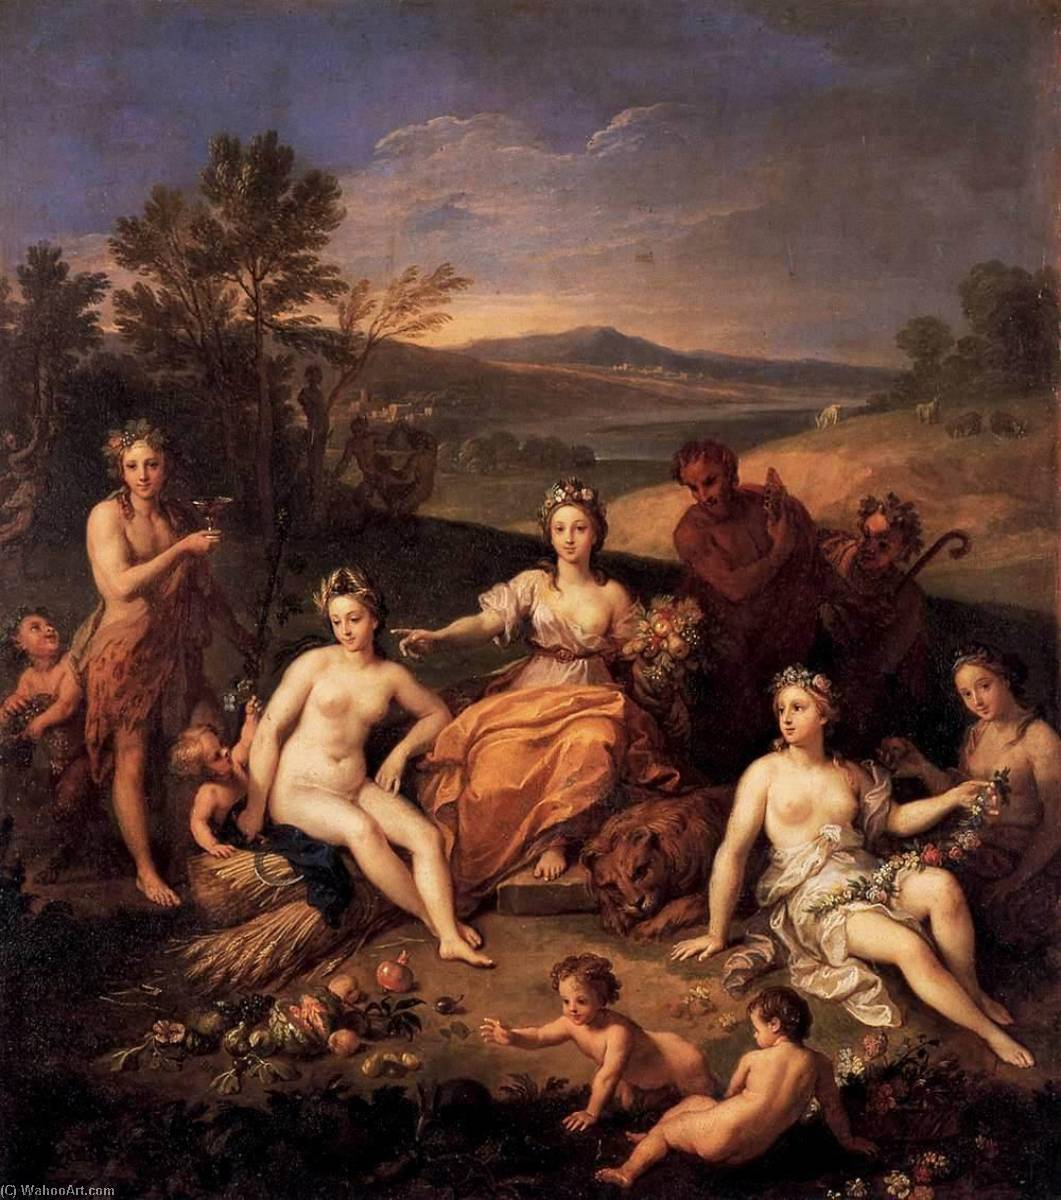 Order Paintings Reproductions | Earth, 1698 by Louis De Boulogne The Younger (1654-1733) | WahooArt.com